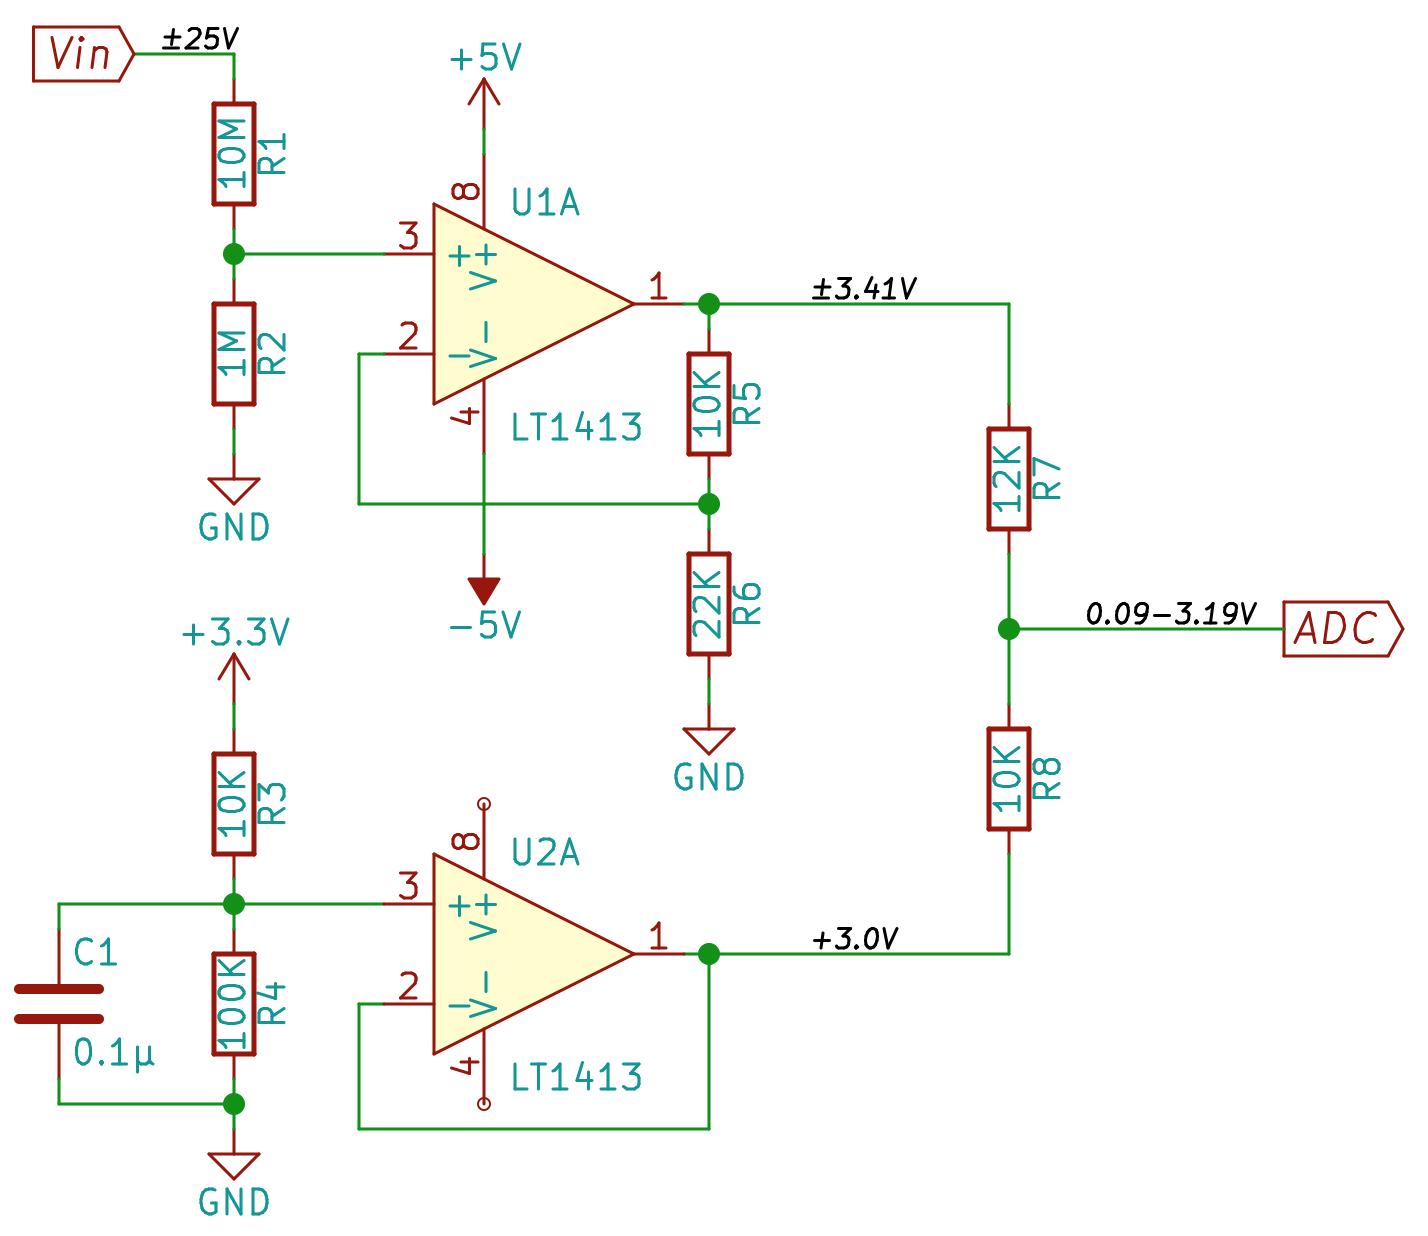 Articles On Jeelabs Isolation Transformer Grounding Diagram Likewise Iphone Microphone Several Changes Are Worth Pointing Out And A Minor Tweak R6 Should Be 20k Not 22k